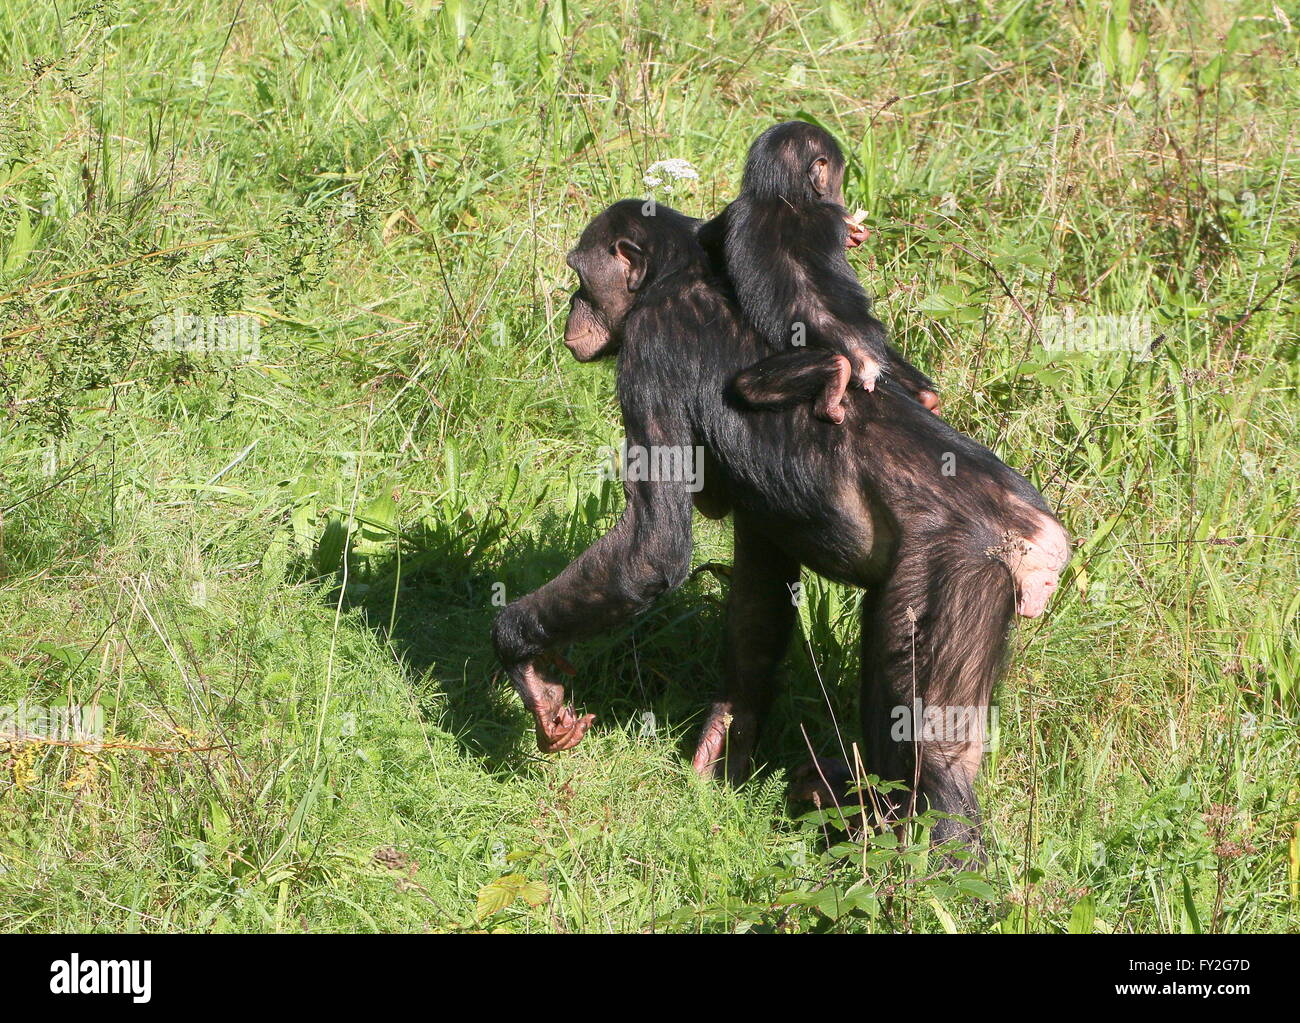 Mother African Bonobo Chimpanzees (Pan Paniscus) walking with her baby youngster on her back - Stock Image